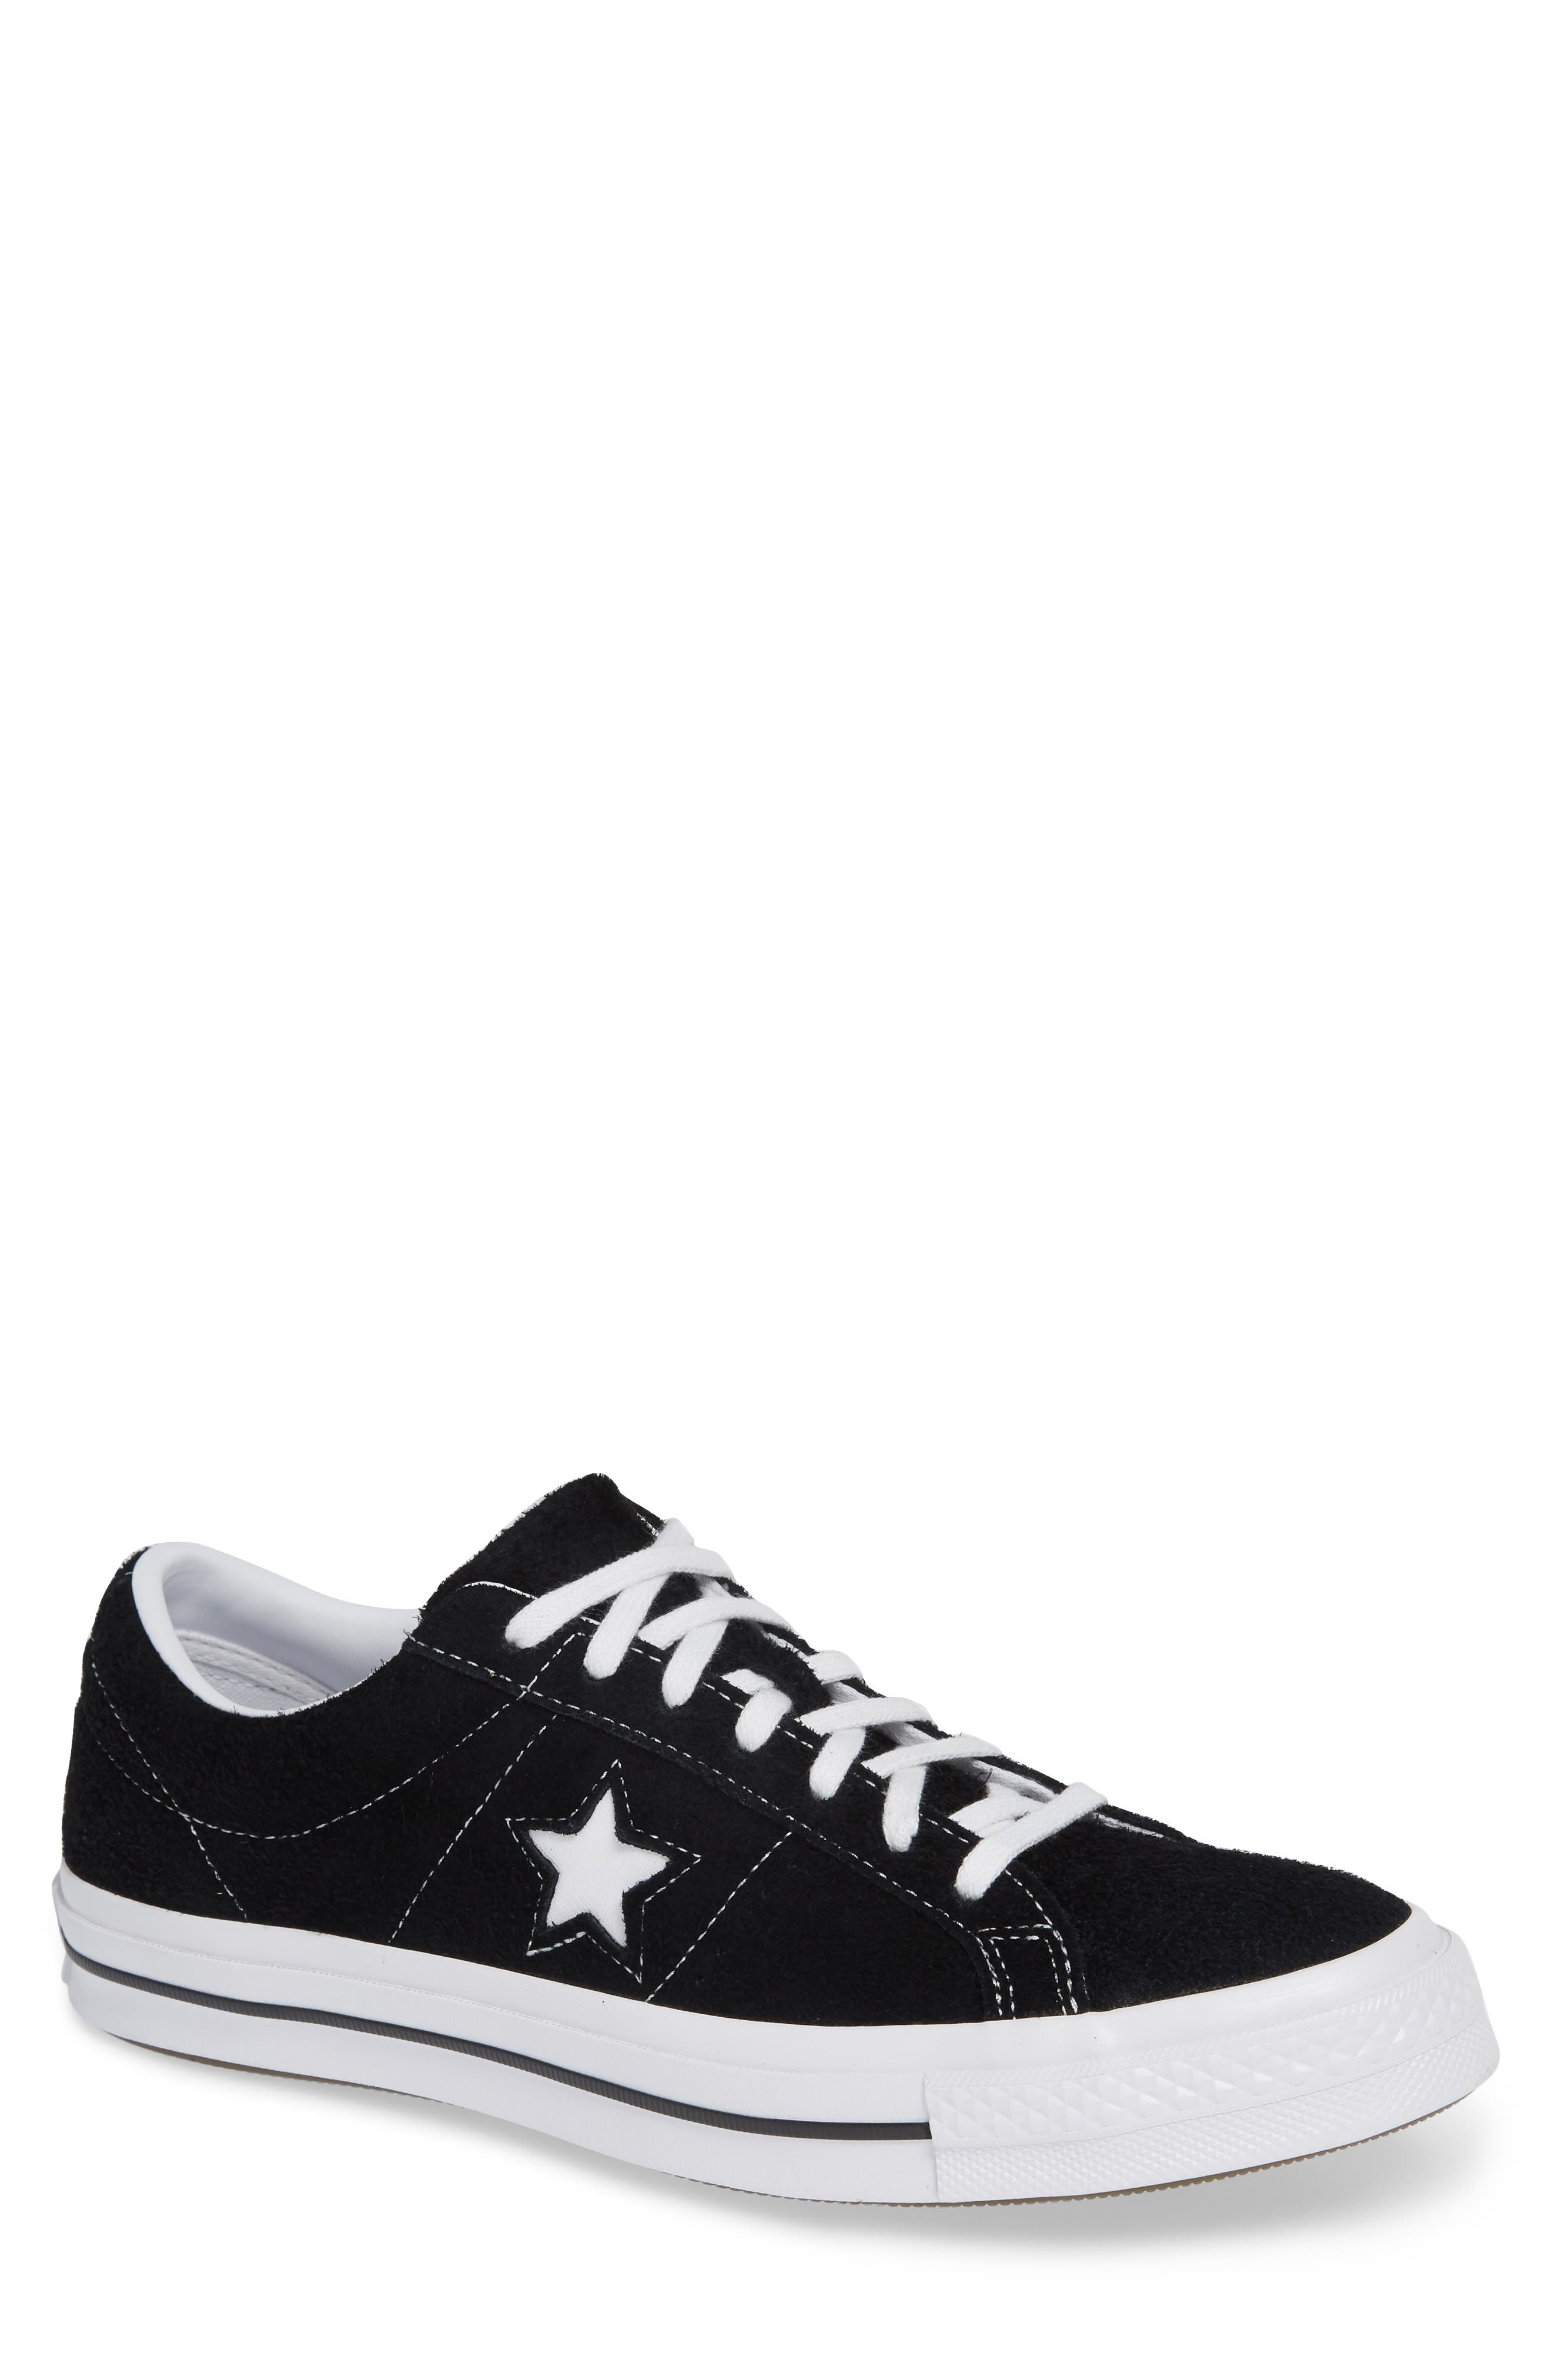 One Star Low Top Sneaker,                             Main thumbnail 1, color,                             001